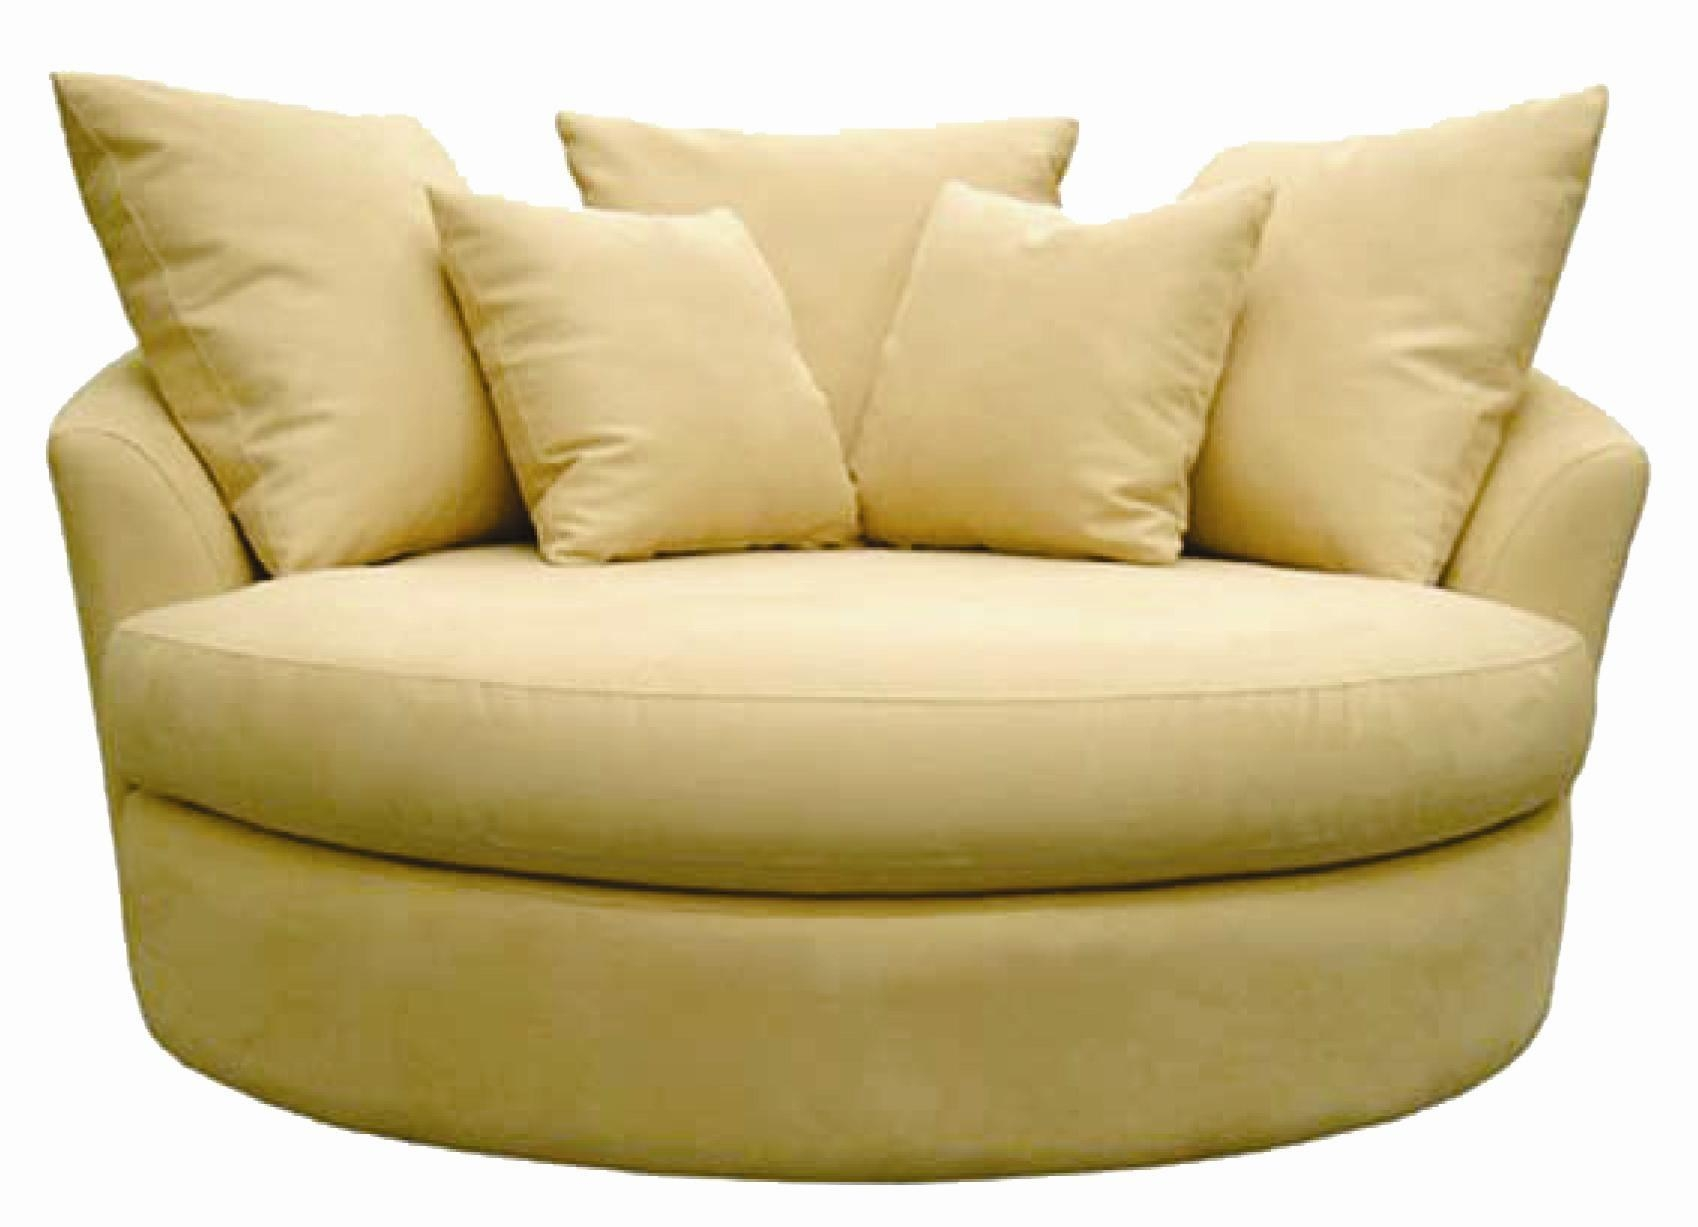 Round Sofa Chair Covers | Tehranmix Decoration Within Round Sofa Chairs (View 17 of 20)